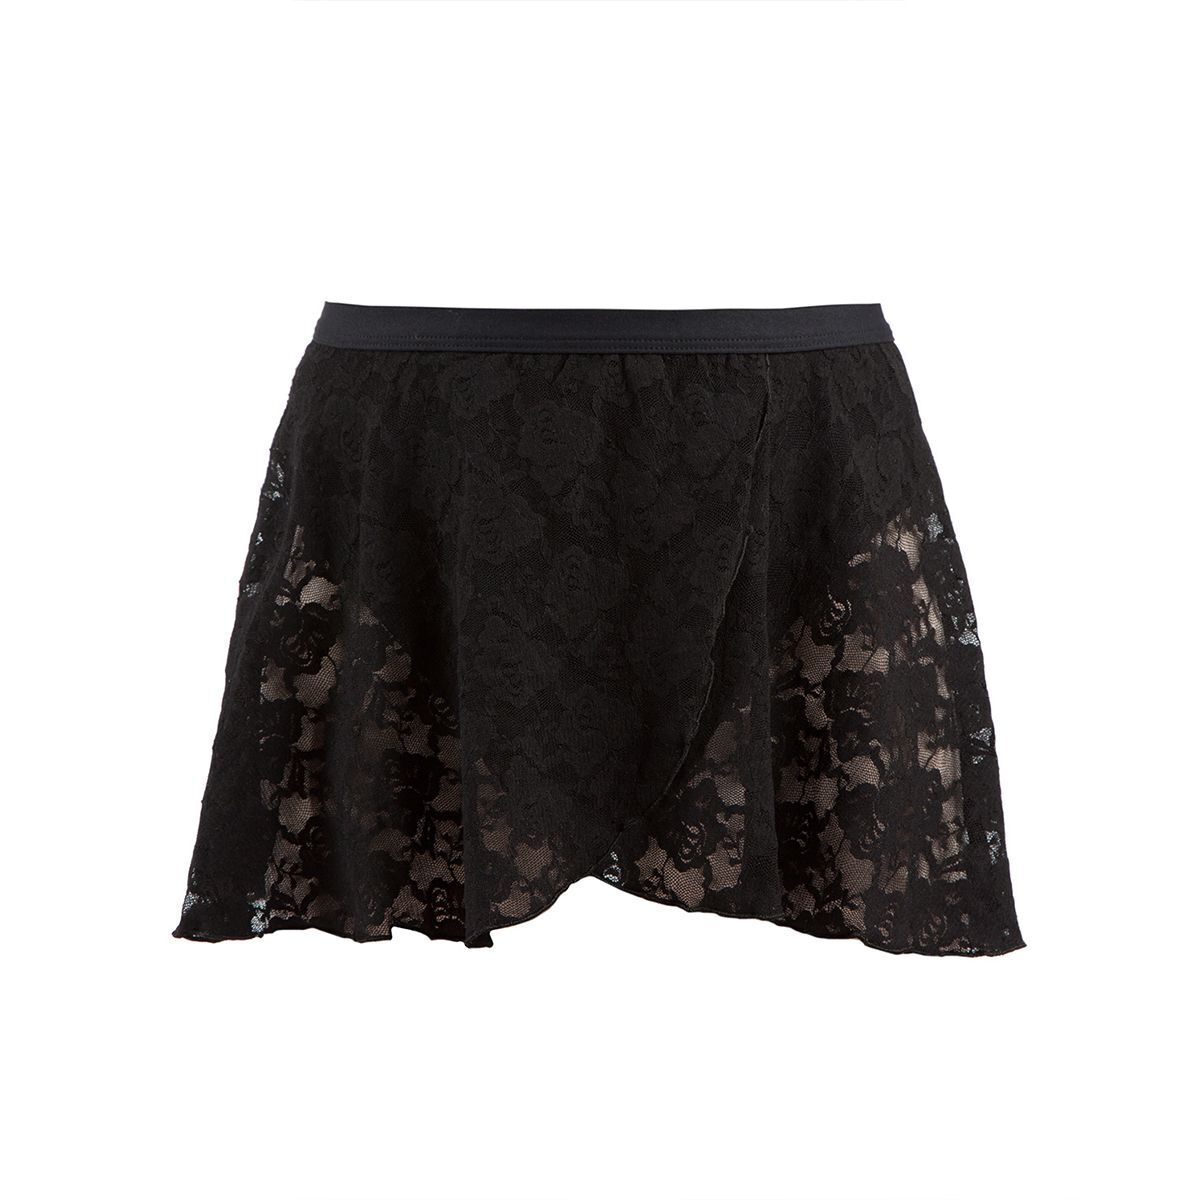 Energetiks Melody Lace Skirt Adult